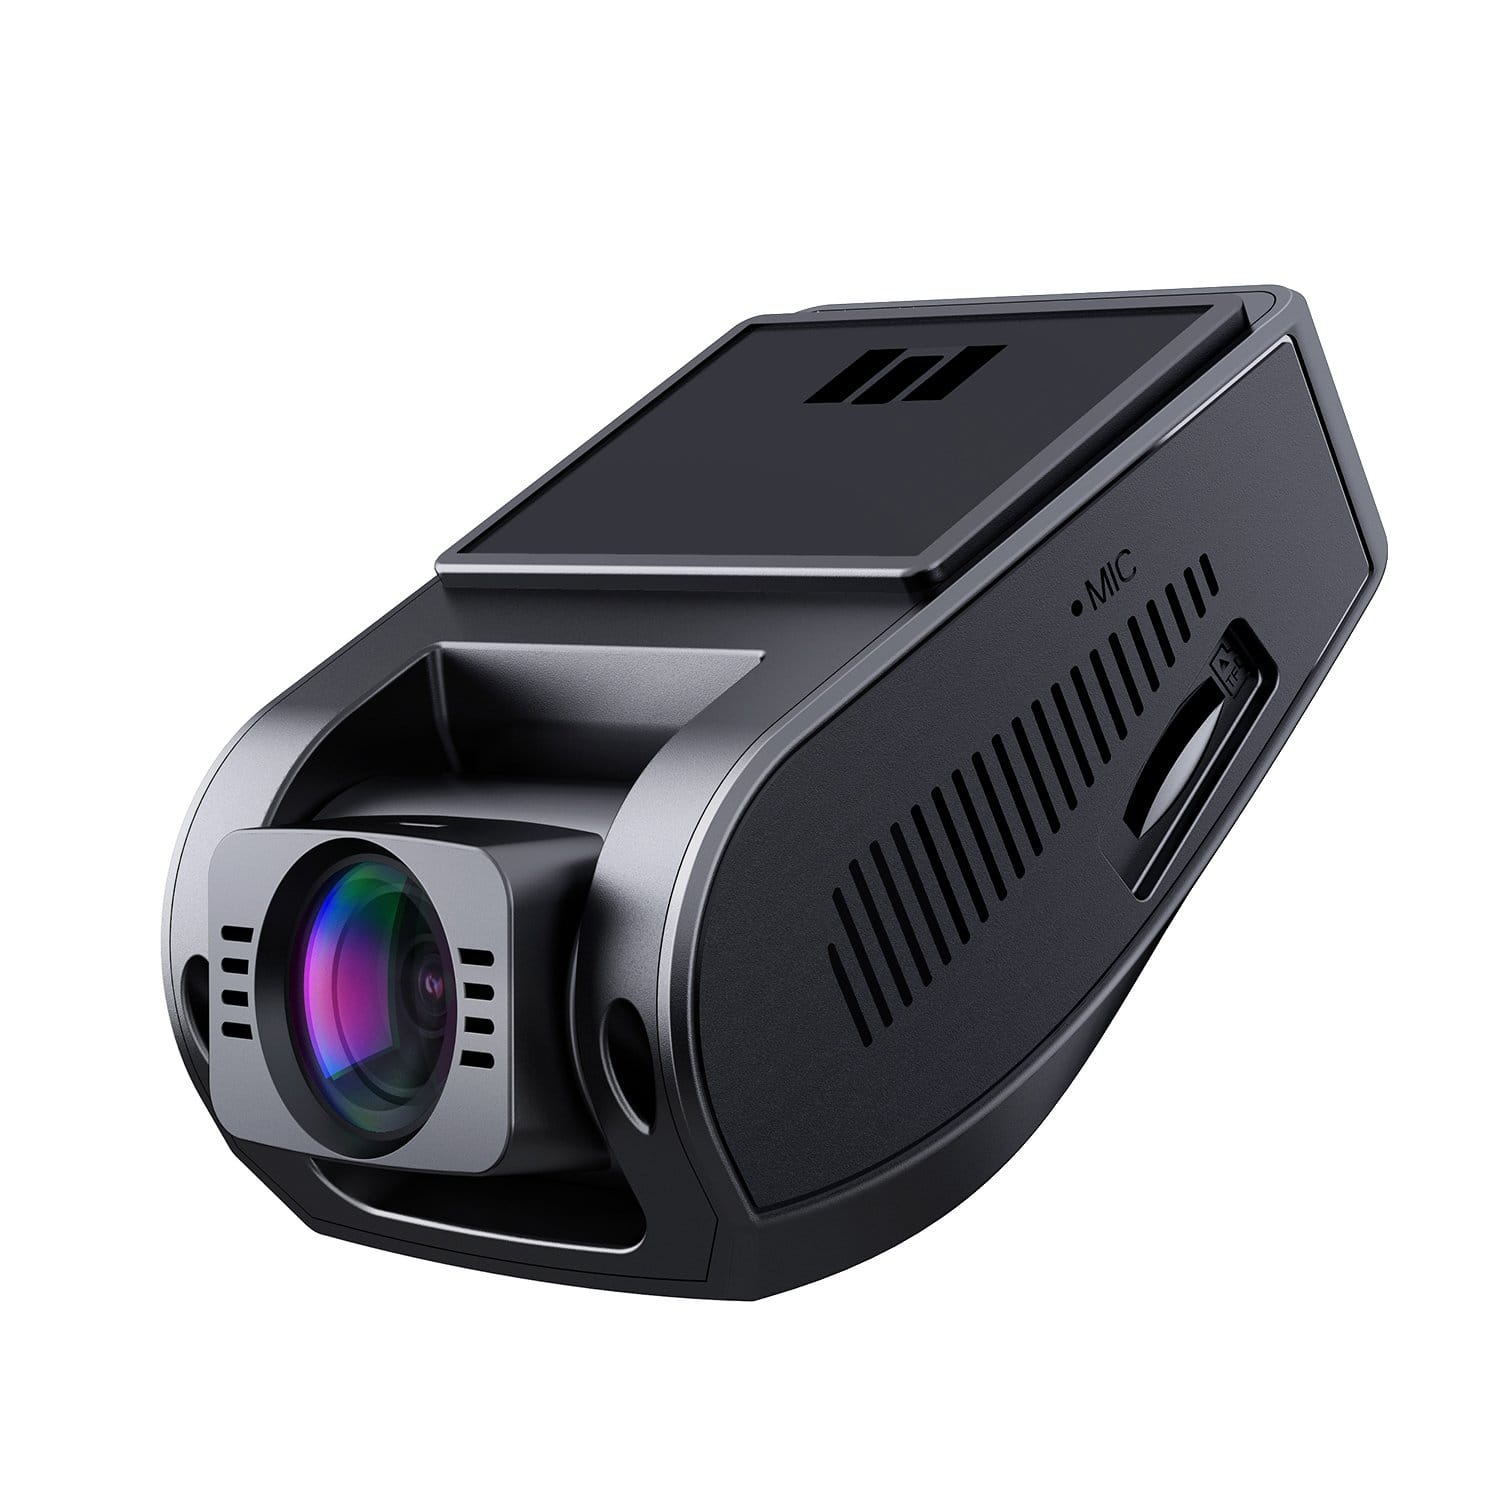 AUKEY Dash Cam, 1080P Dashboard Camera Recorder, 6-Lane 170 Degree Wide Angle Lens, Supercapacitor, G-sensor and Clear Nighttime Recording $49.99